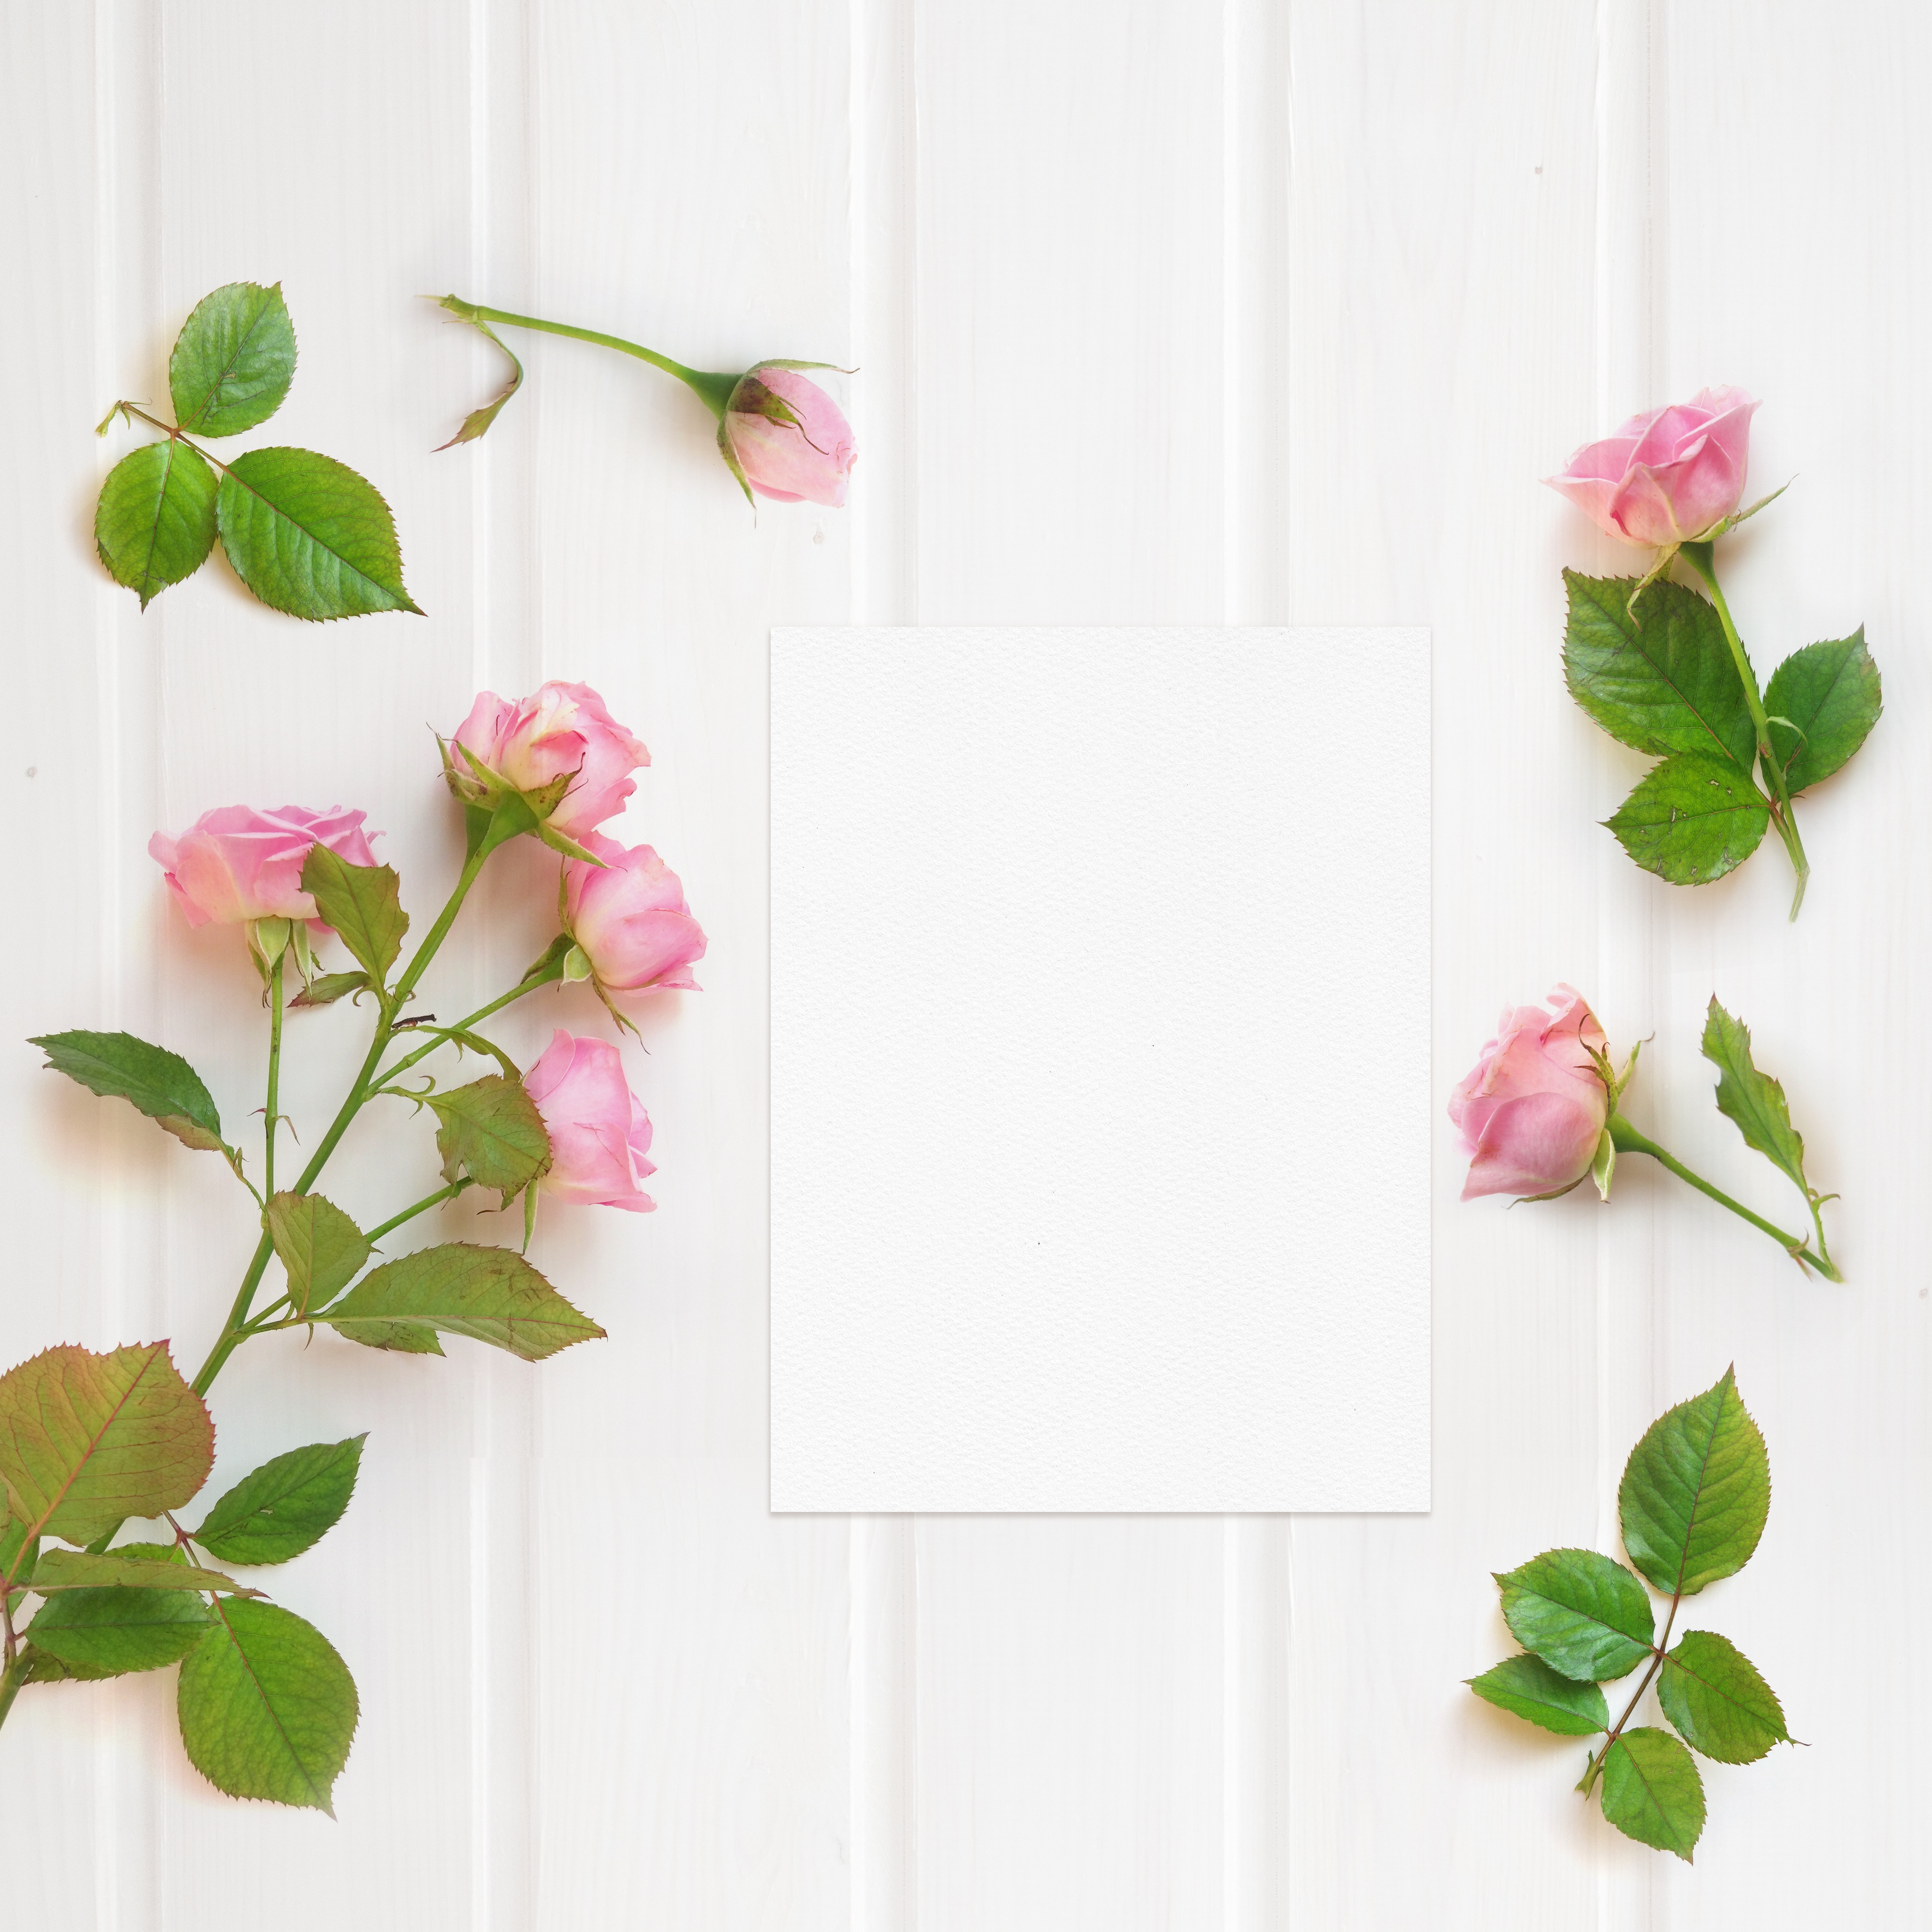 Green leaf with pink rose 56203